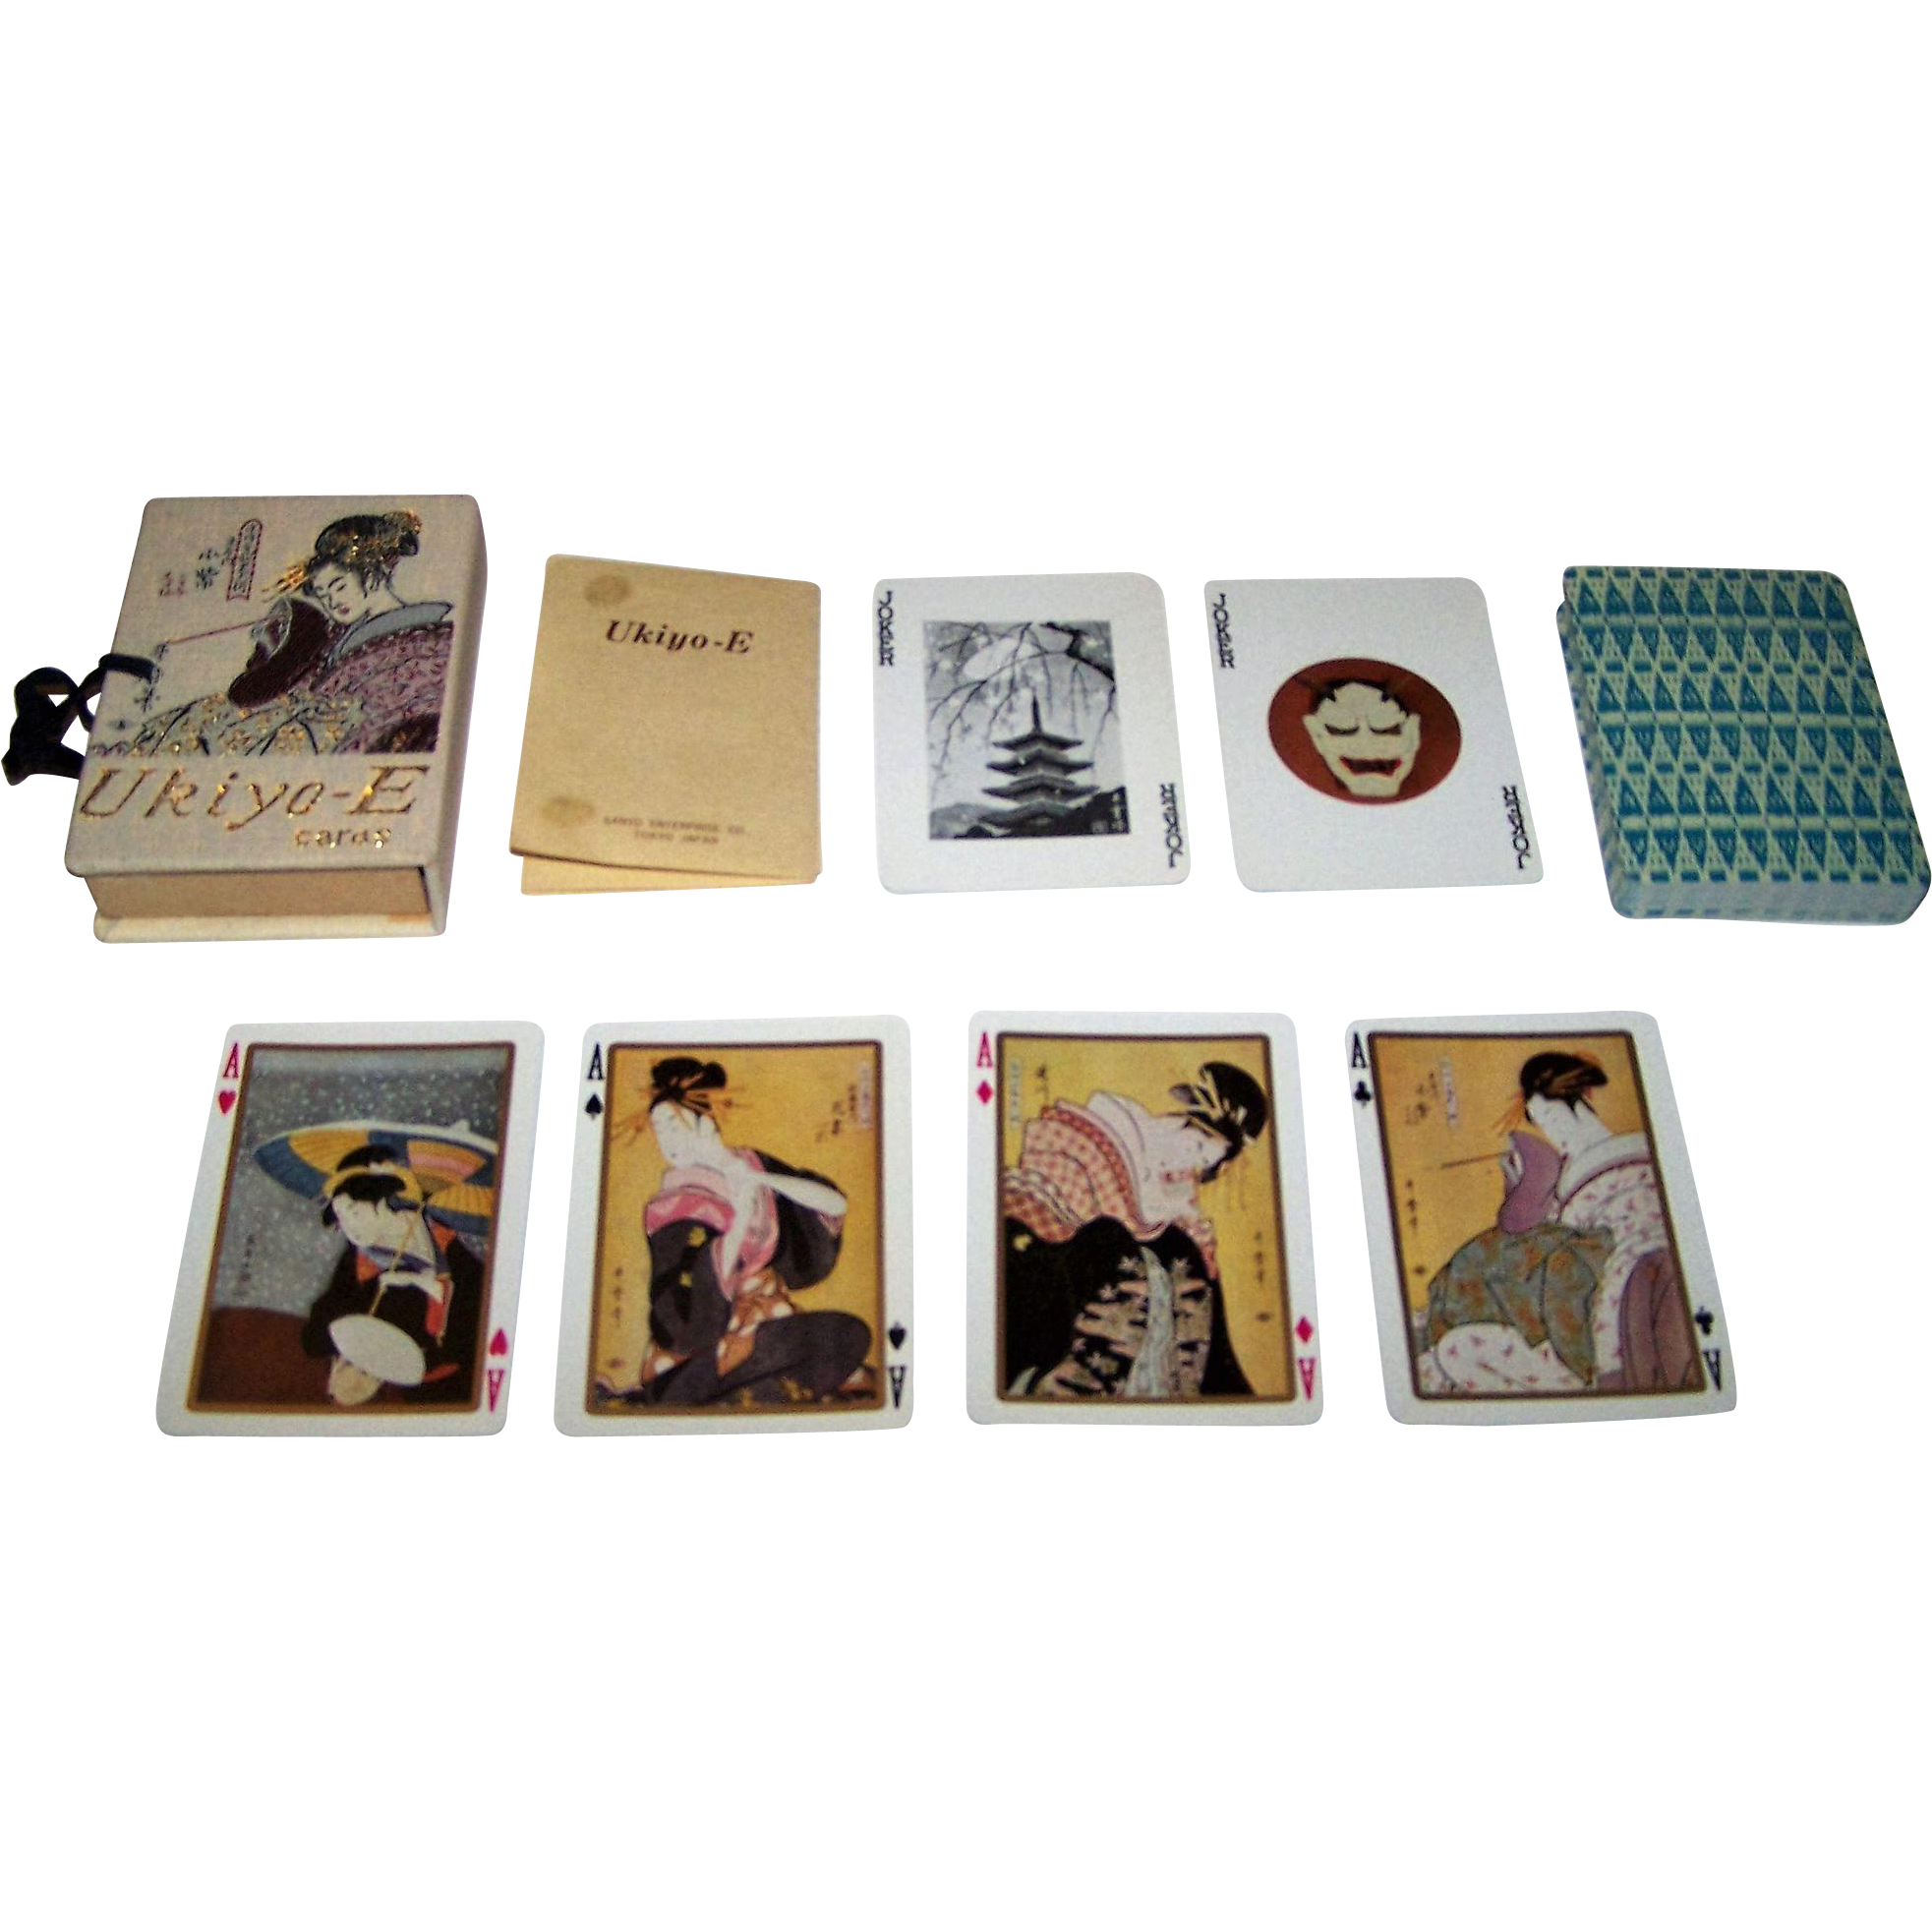 "Nintendo ""Ukiyo-E"" Playing Cards, Sanyo Enterprise Co. Publ., c.1960"